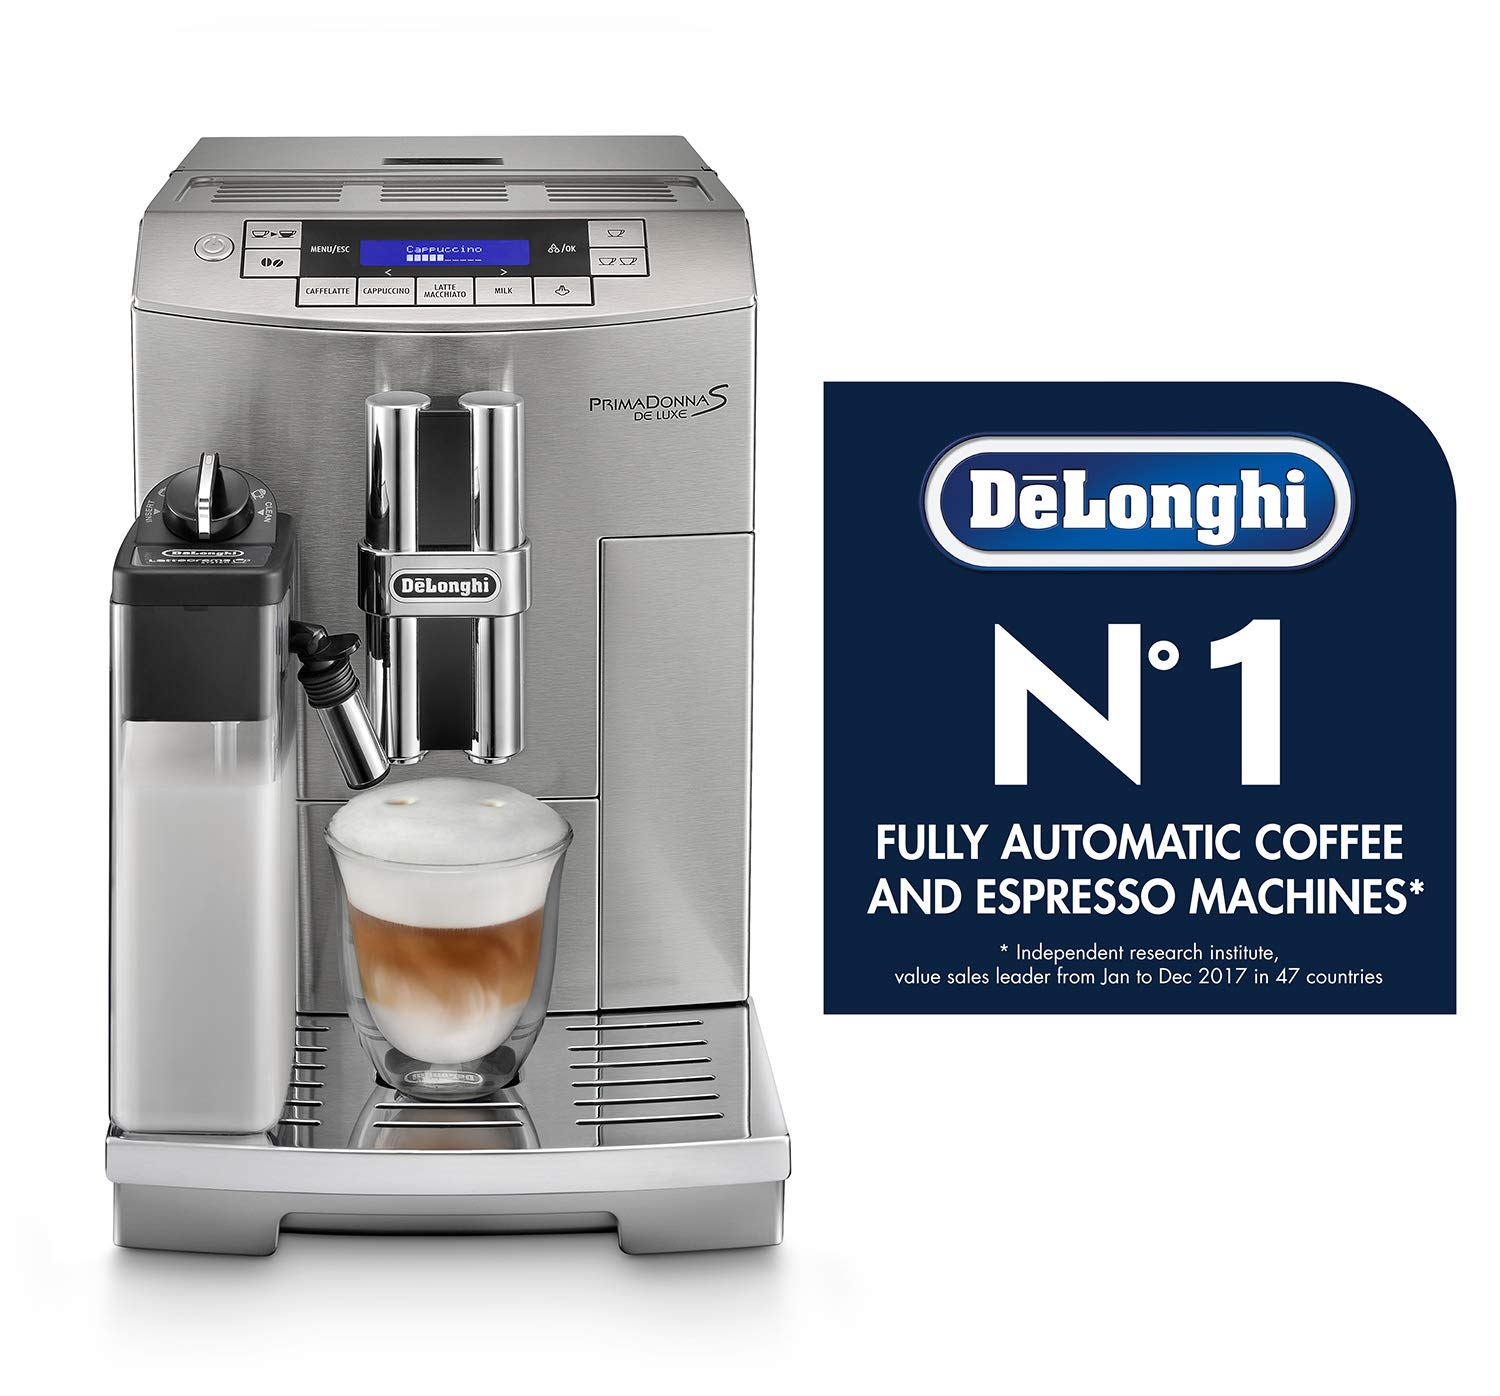 48db919f4397 DeLonghi ECAM28465M PrimaDonna S Fully Automatic Espresso and Cappuccino  Machine with One Touch LatteCrema System, Stainless Steel: Amazon.ca: Home  & ...